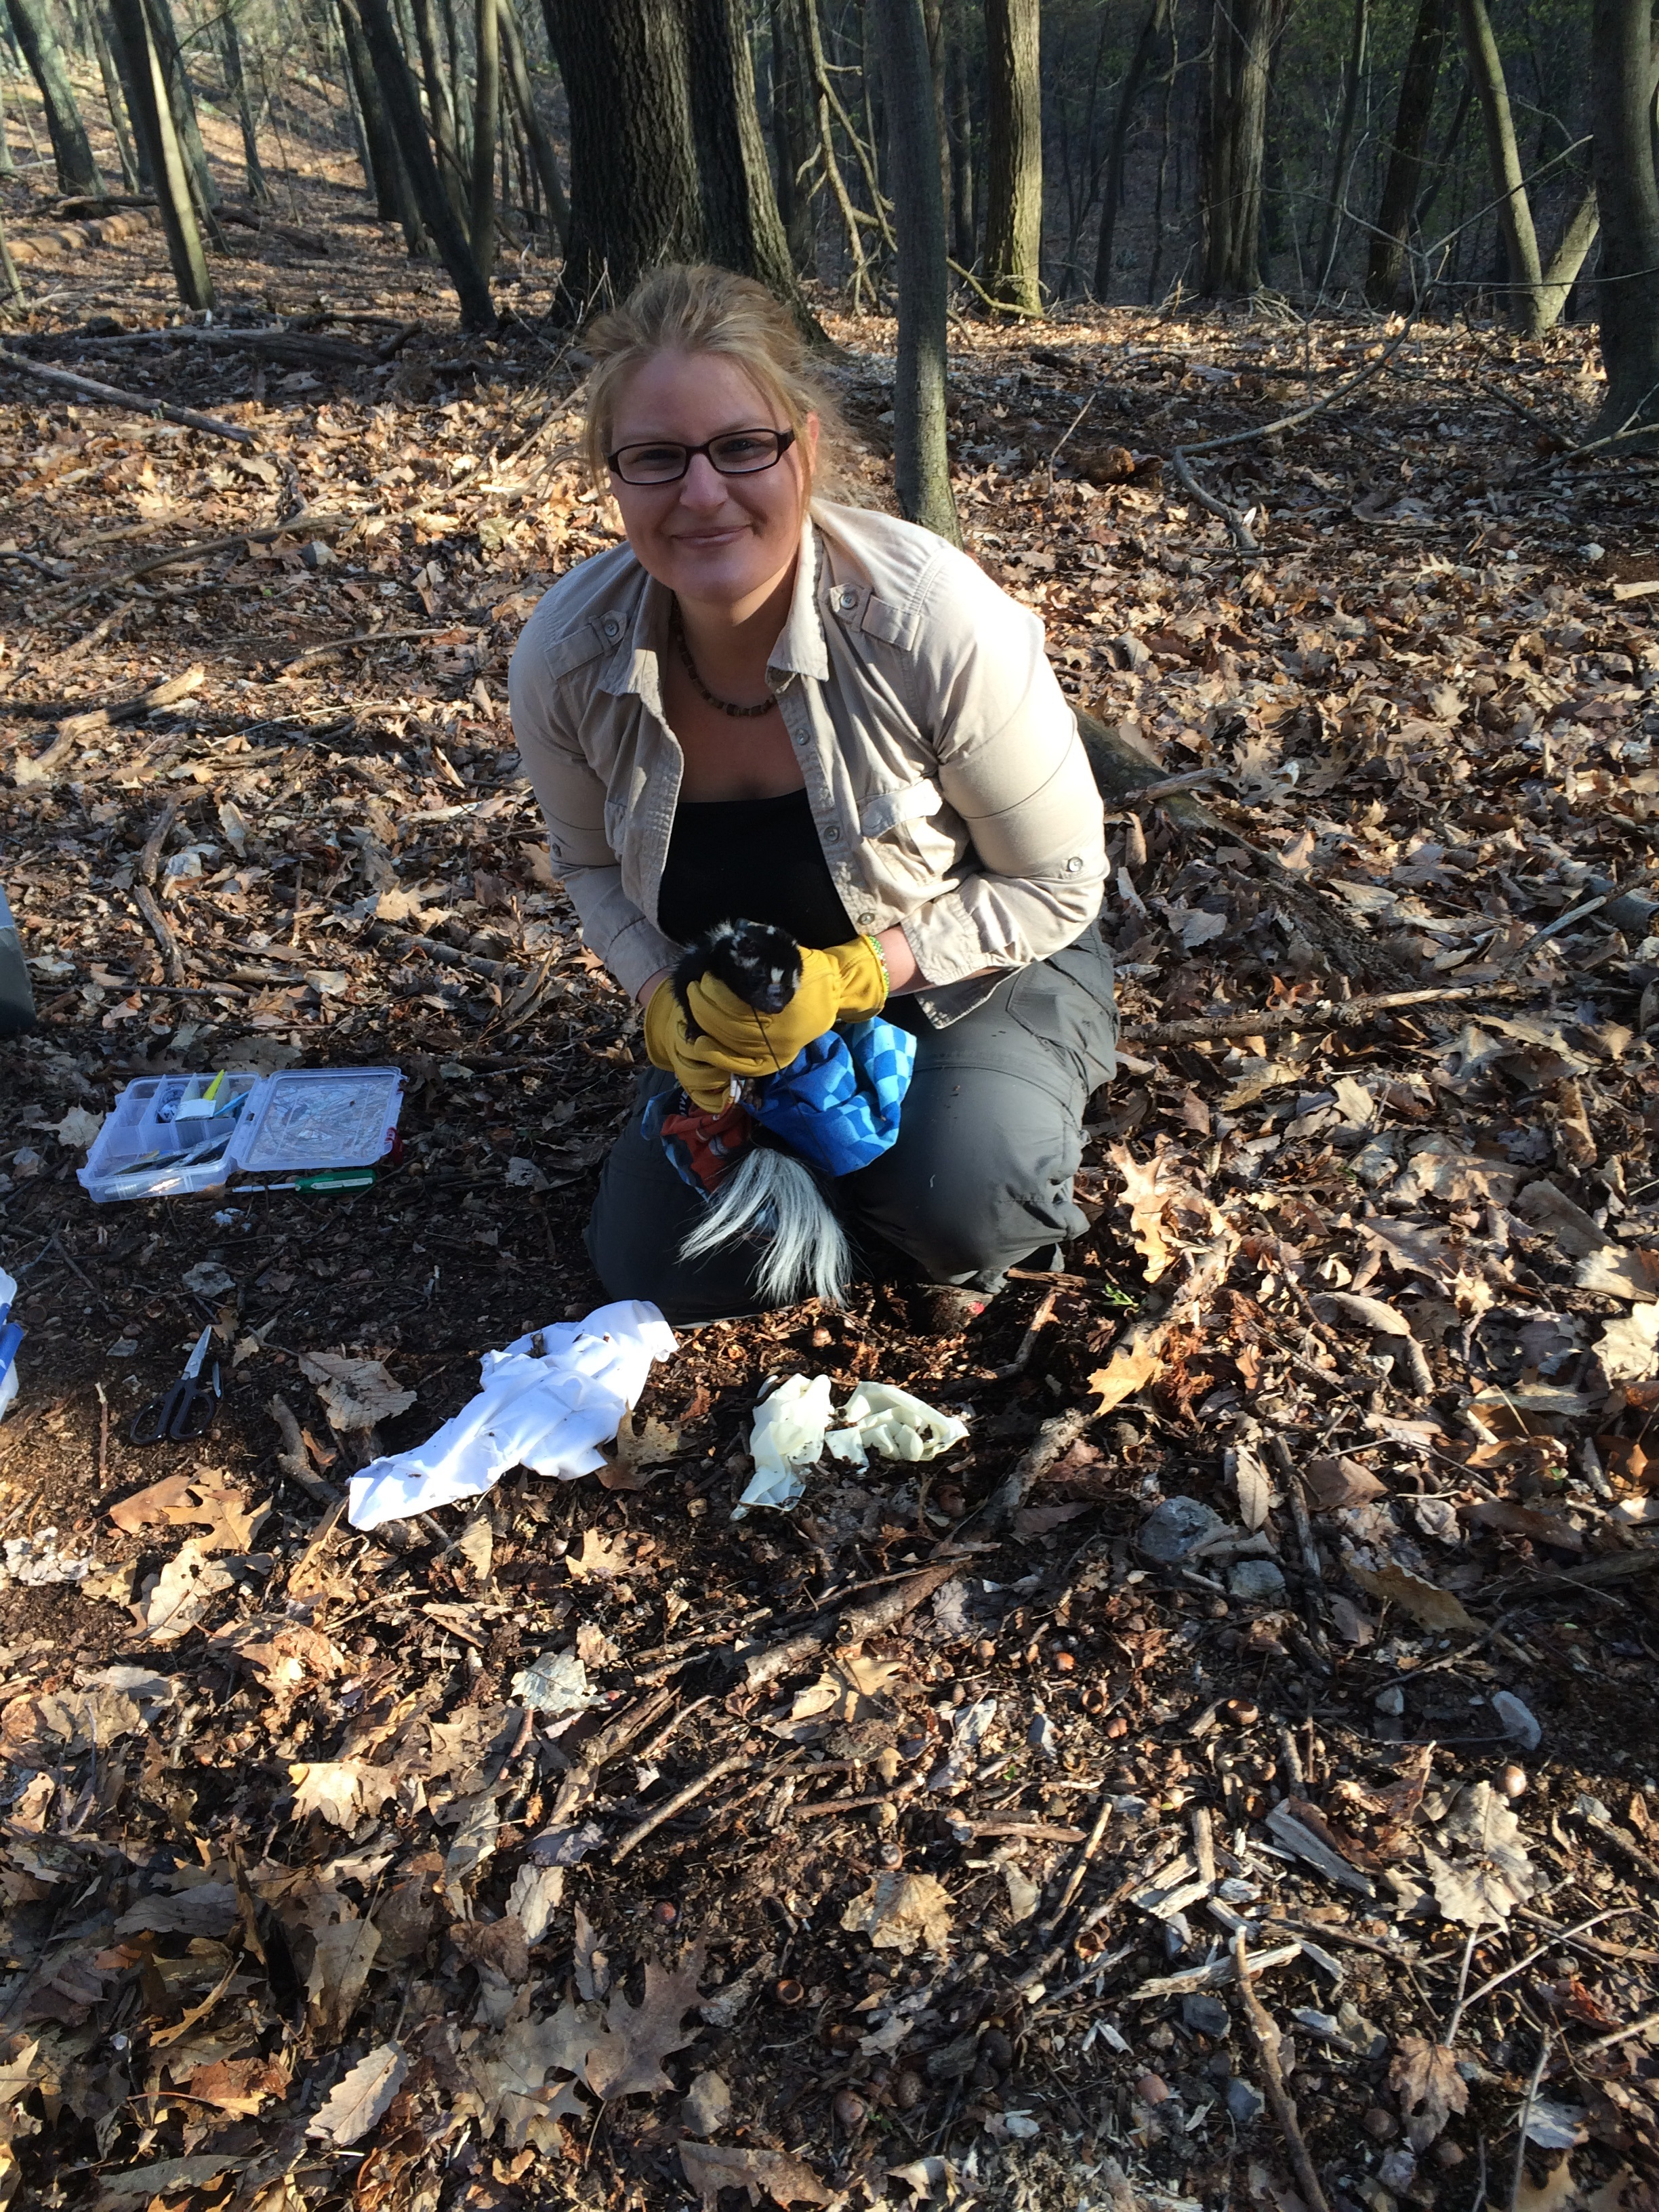 Eastern spotted skunk telemetry project